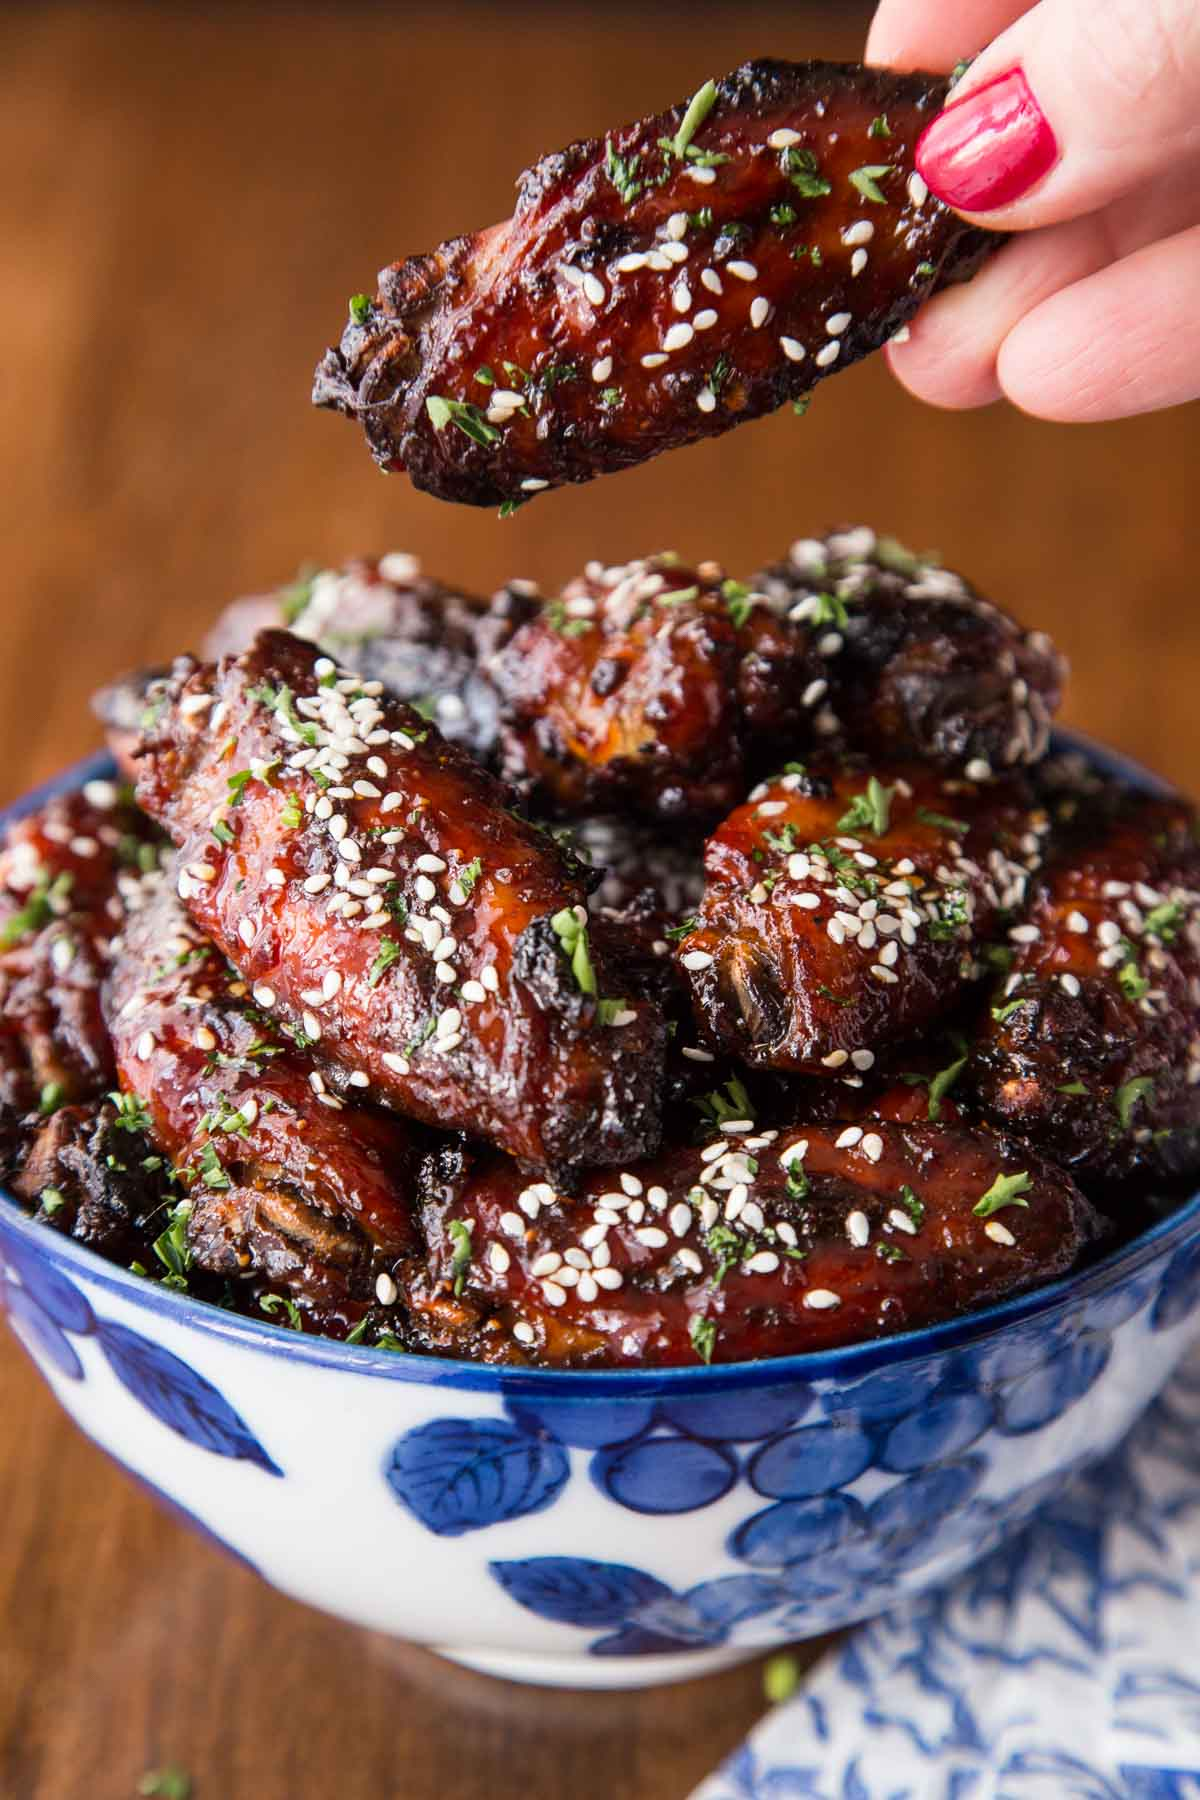 Vertical photo of strawberry balsamic wings garnished with sesame seeds in a blue and white bowl. A person's is holding one above the dish.